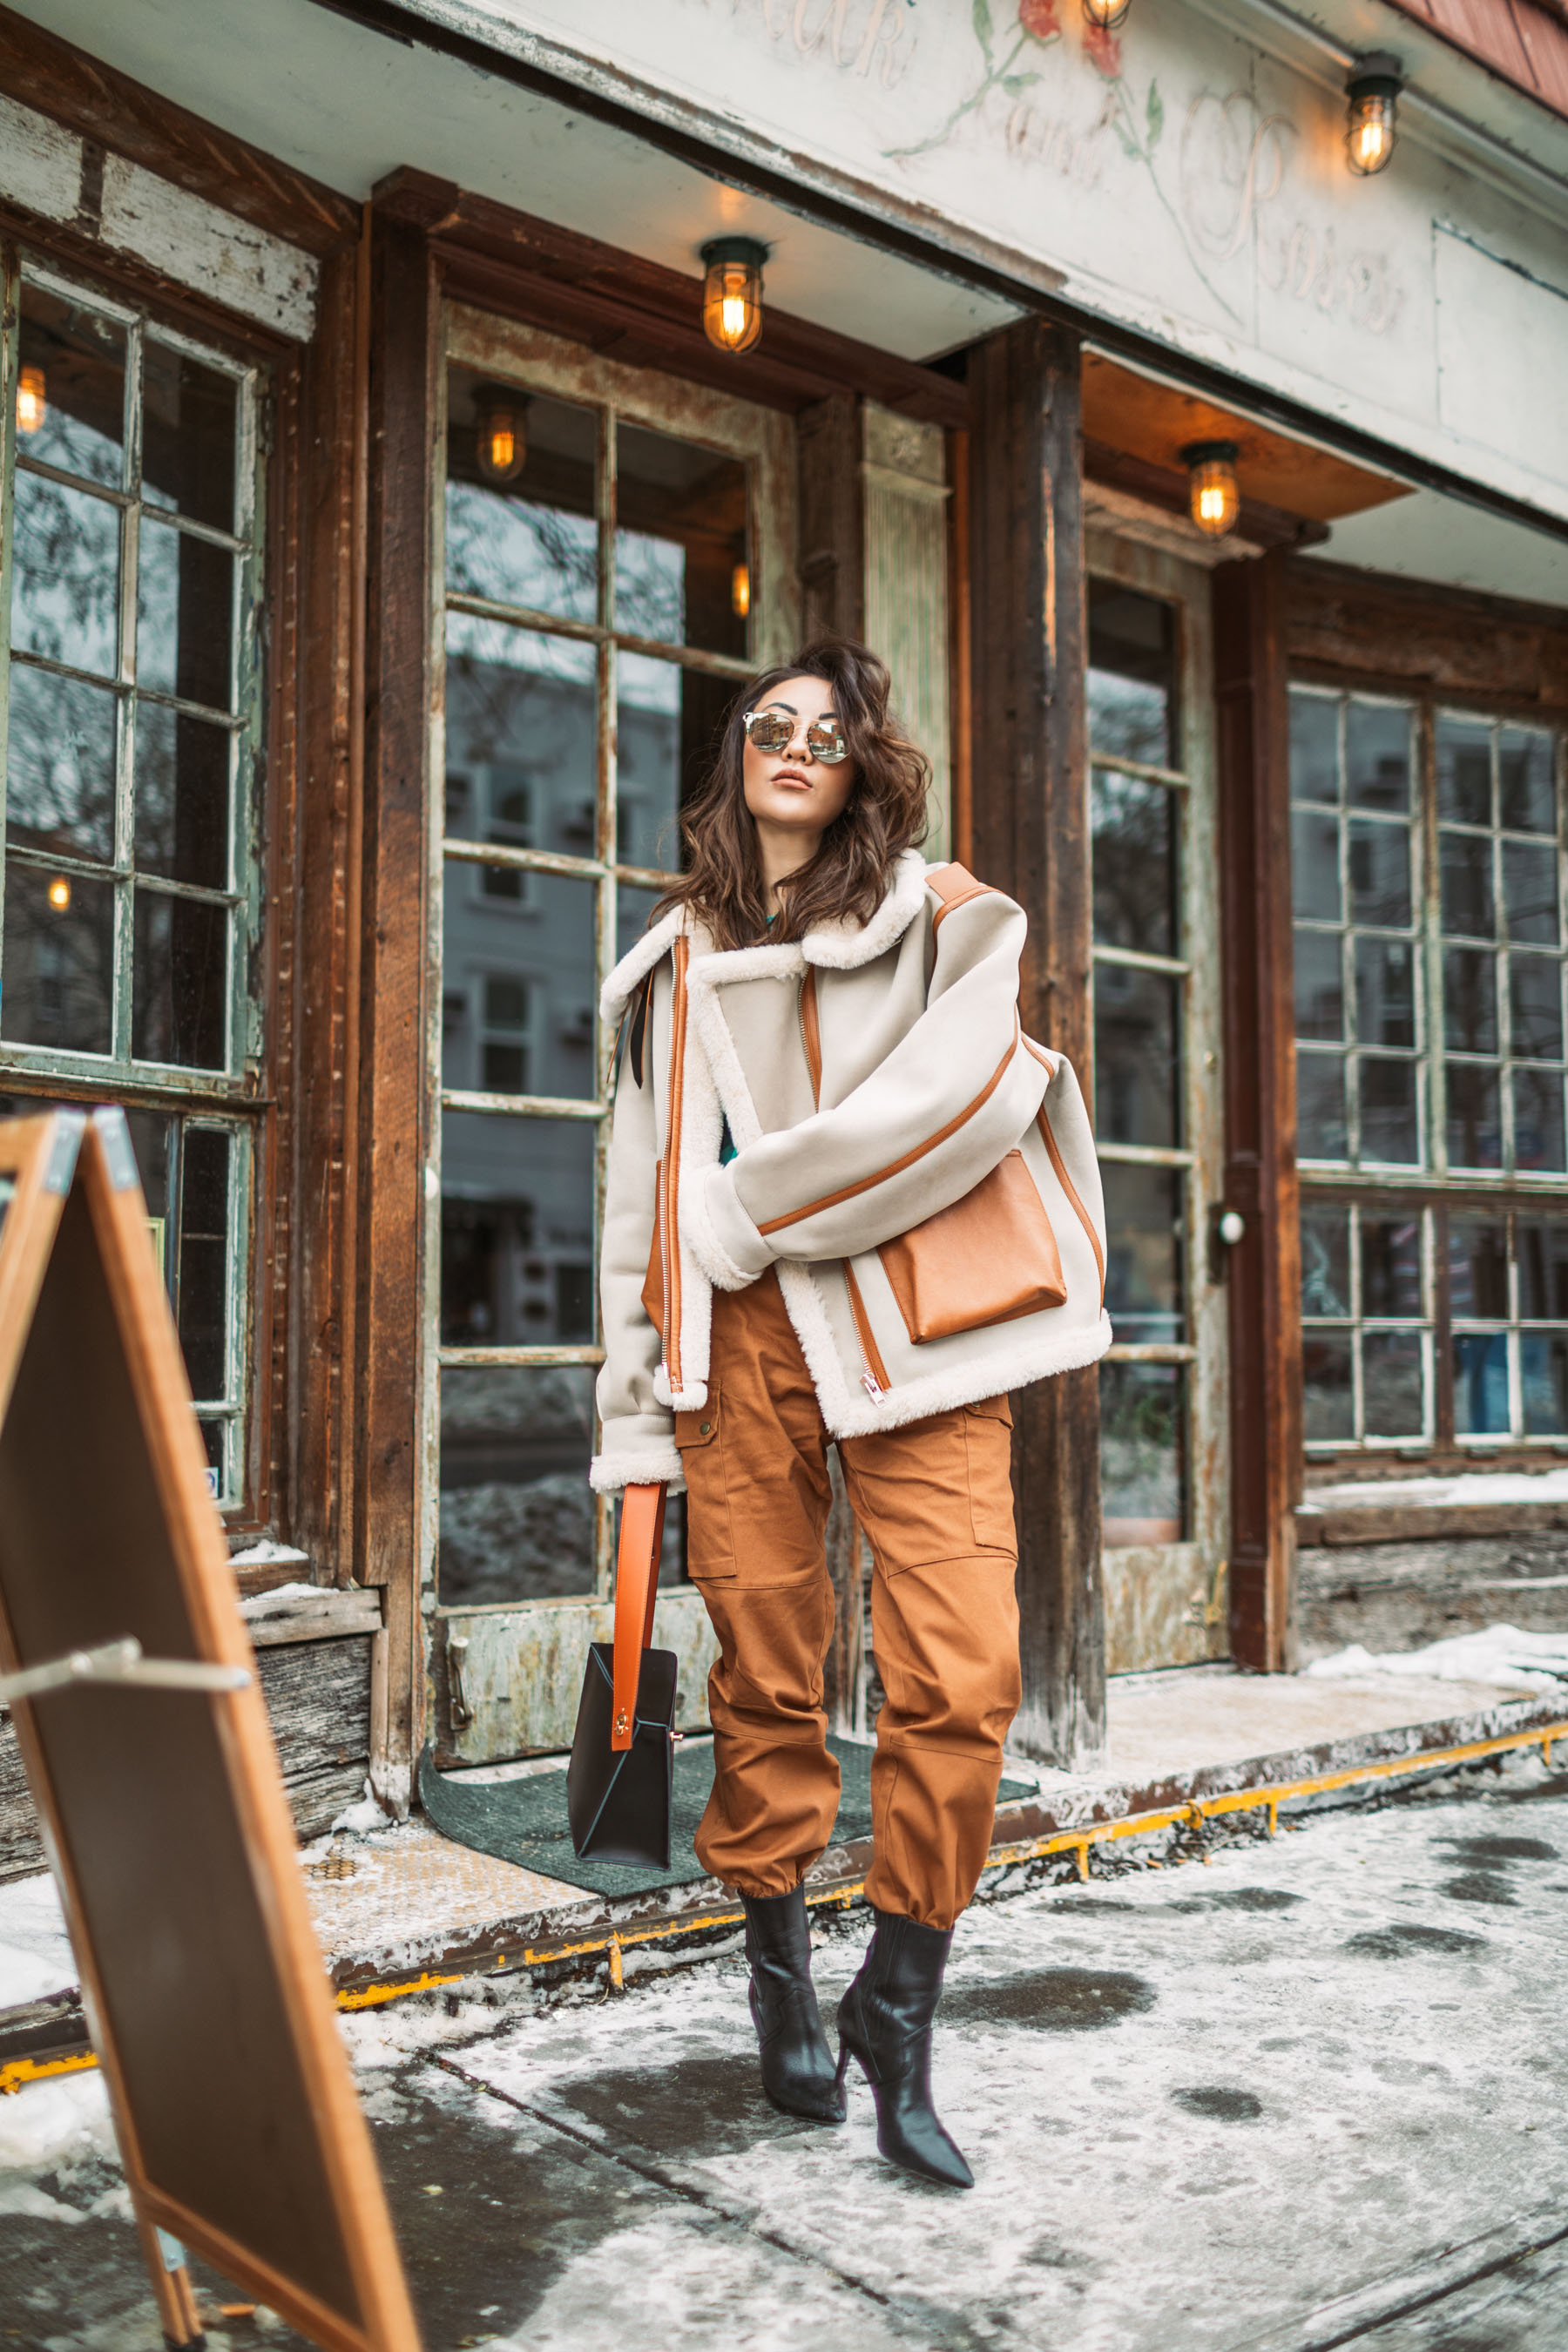 Instagram Outfits Round Up // Notjessfashion.com // Cozy Layered looks, jessica wang, fashion blogger, new york fashion blogger, street style fashion, ootd, mirrored sunglasses, aviator jacket, shearling jacket, trendy style, cozy winter look